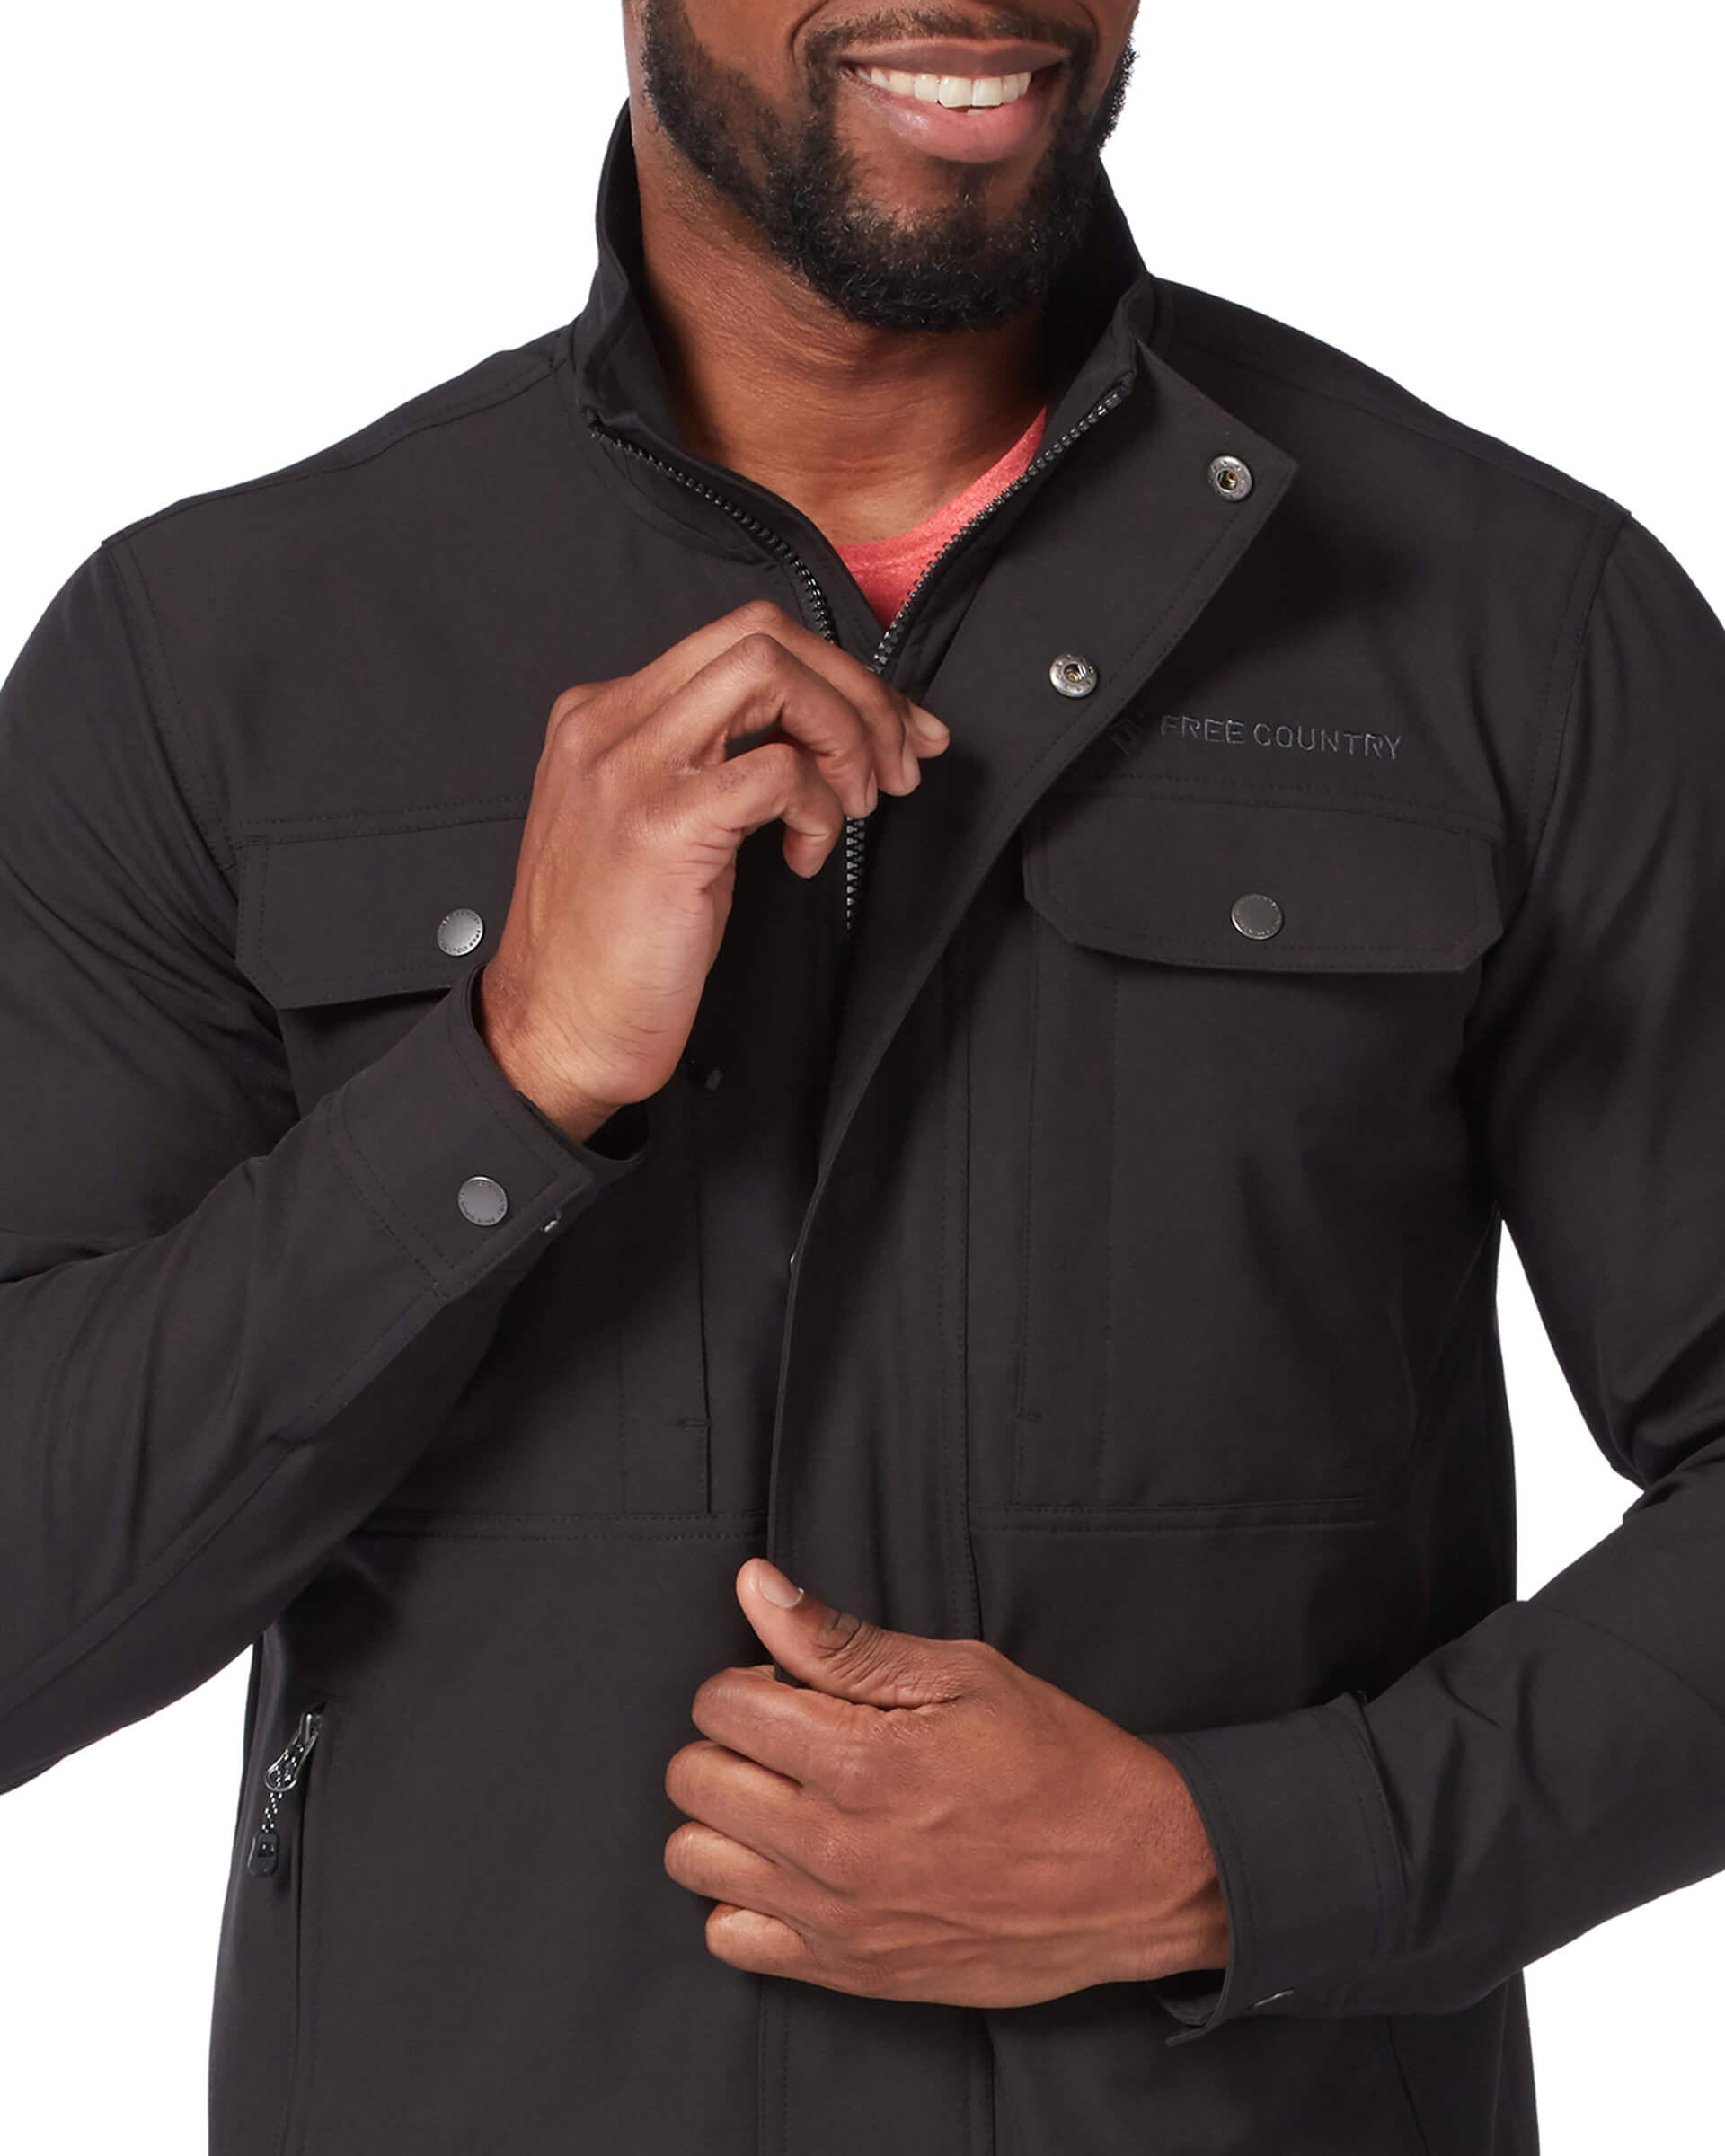 Men's Lightweight Aerobic Safari Soft Shell Jacket